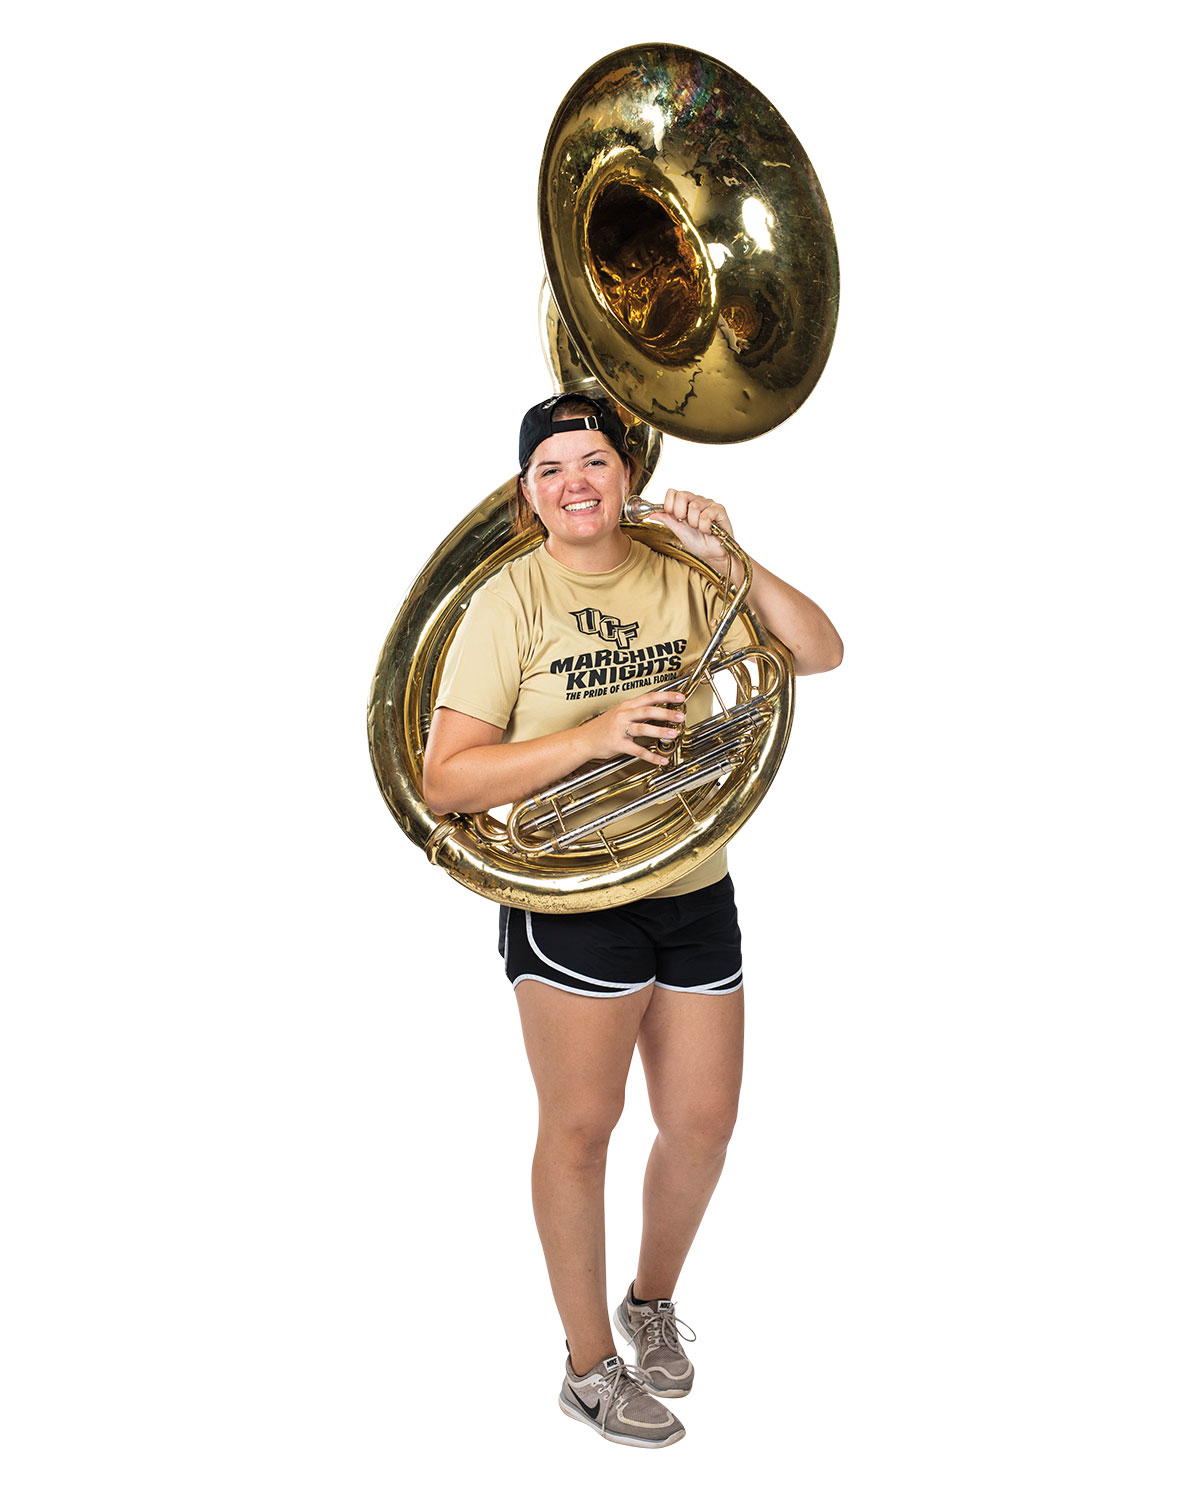 A woman in a yellow shirt and black shorts holds a tuba across her body as she smiles.